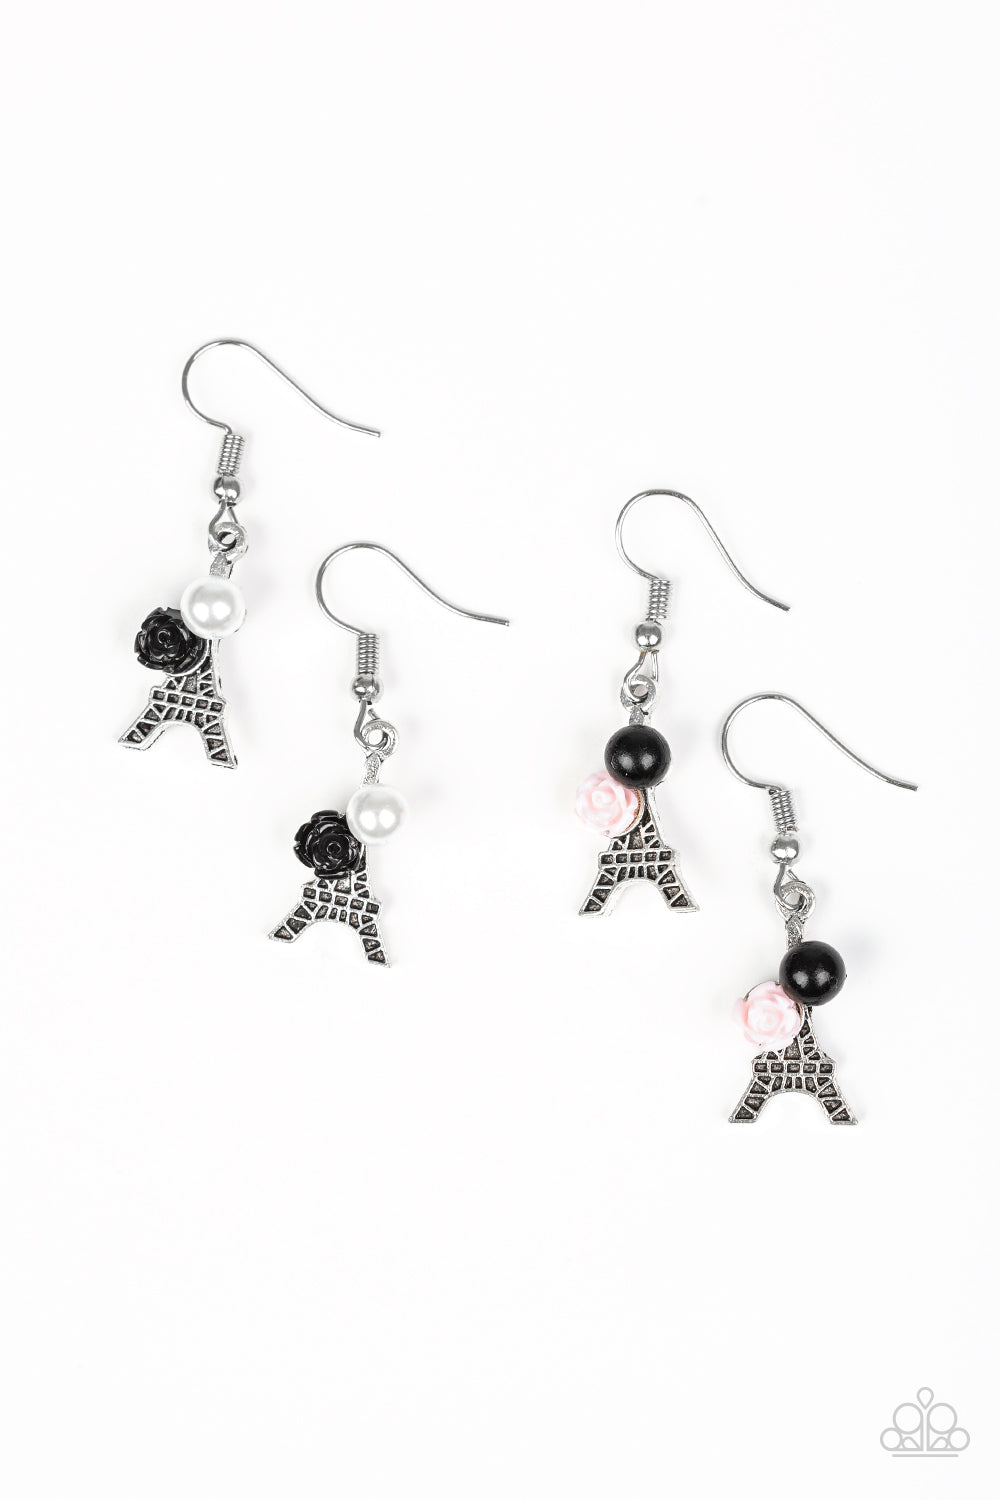 Eiffel Tower Pearl and Rose Earrings - Paparazzi Starlet Shimmer - Pink Dragon Jewels